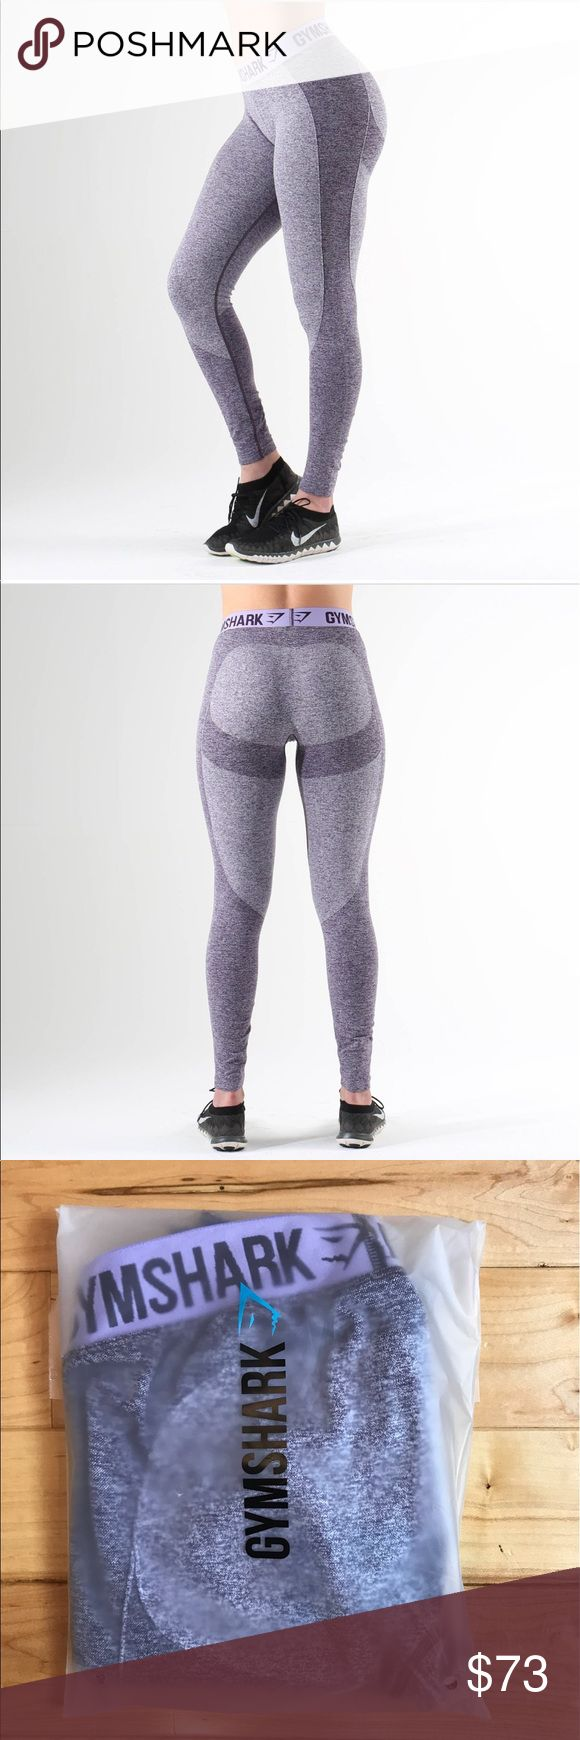 Gymshark Flex Legging - Lilac Gymshark Flex Legging NEW WITH TAGS!  Tried on once for a review video. The packaging did not have the size or barcode but the leggings have tags on them. This is 100% authentic and was purchased directly from Gymshark.  Size: SMALL  Color: Rich Purple Marl/Soft Lilac  Purchased for a review video and do not want to pay to return them!  NO TRADES. NO HOLDS. Smoke Free & Pet Free Home. . Buy before it sells out. Gymshark Pants Leggings